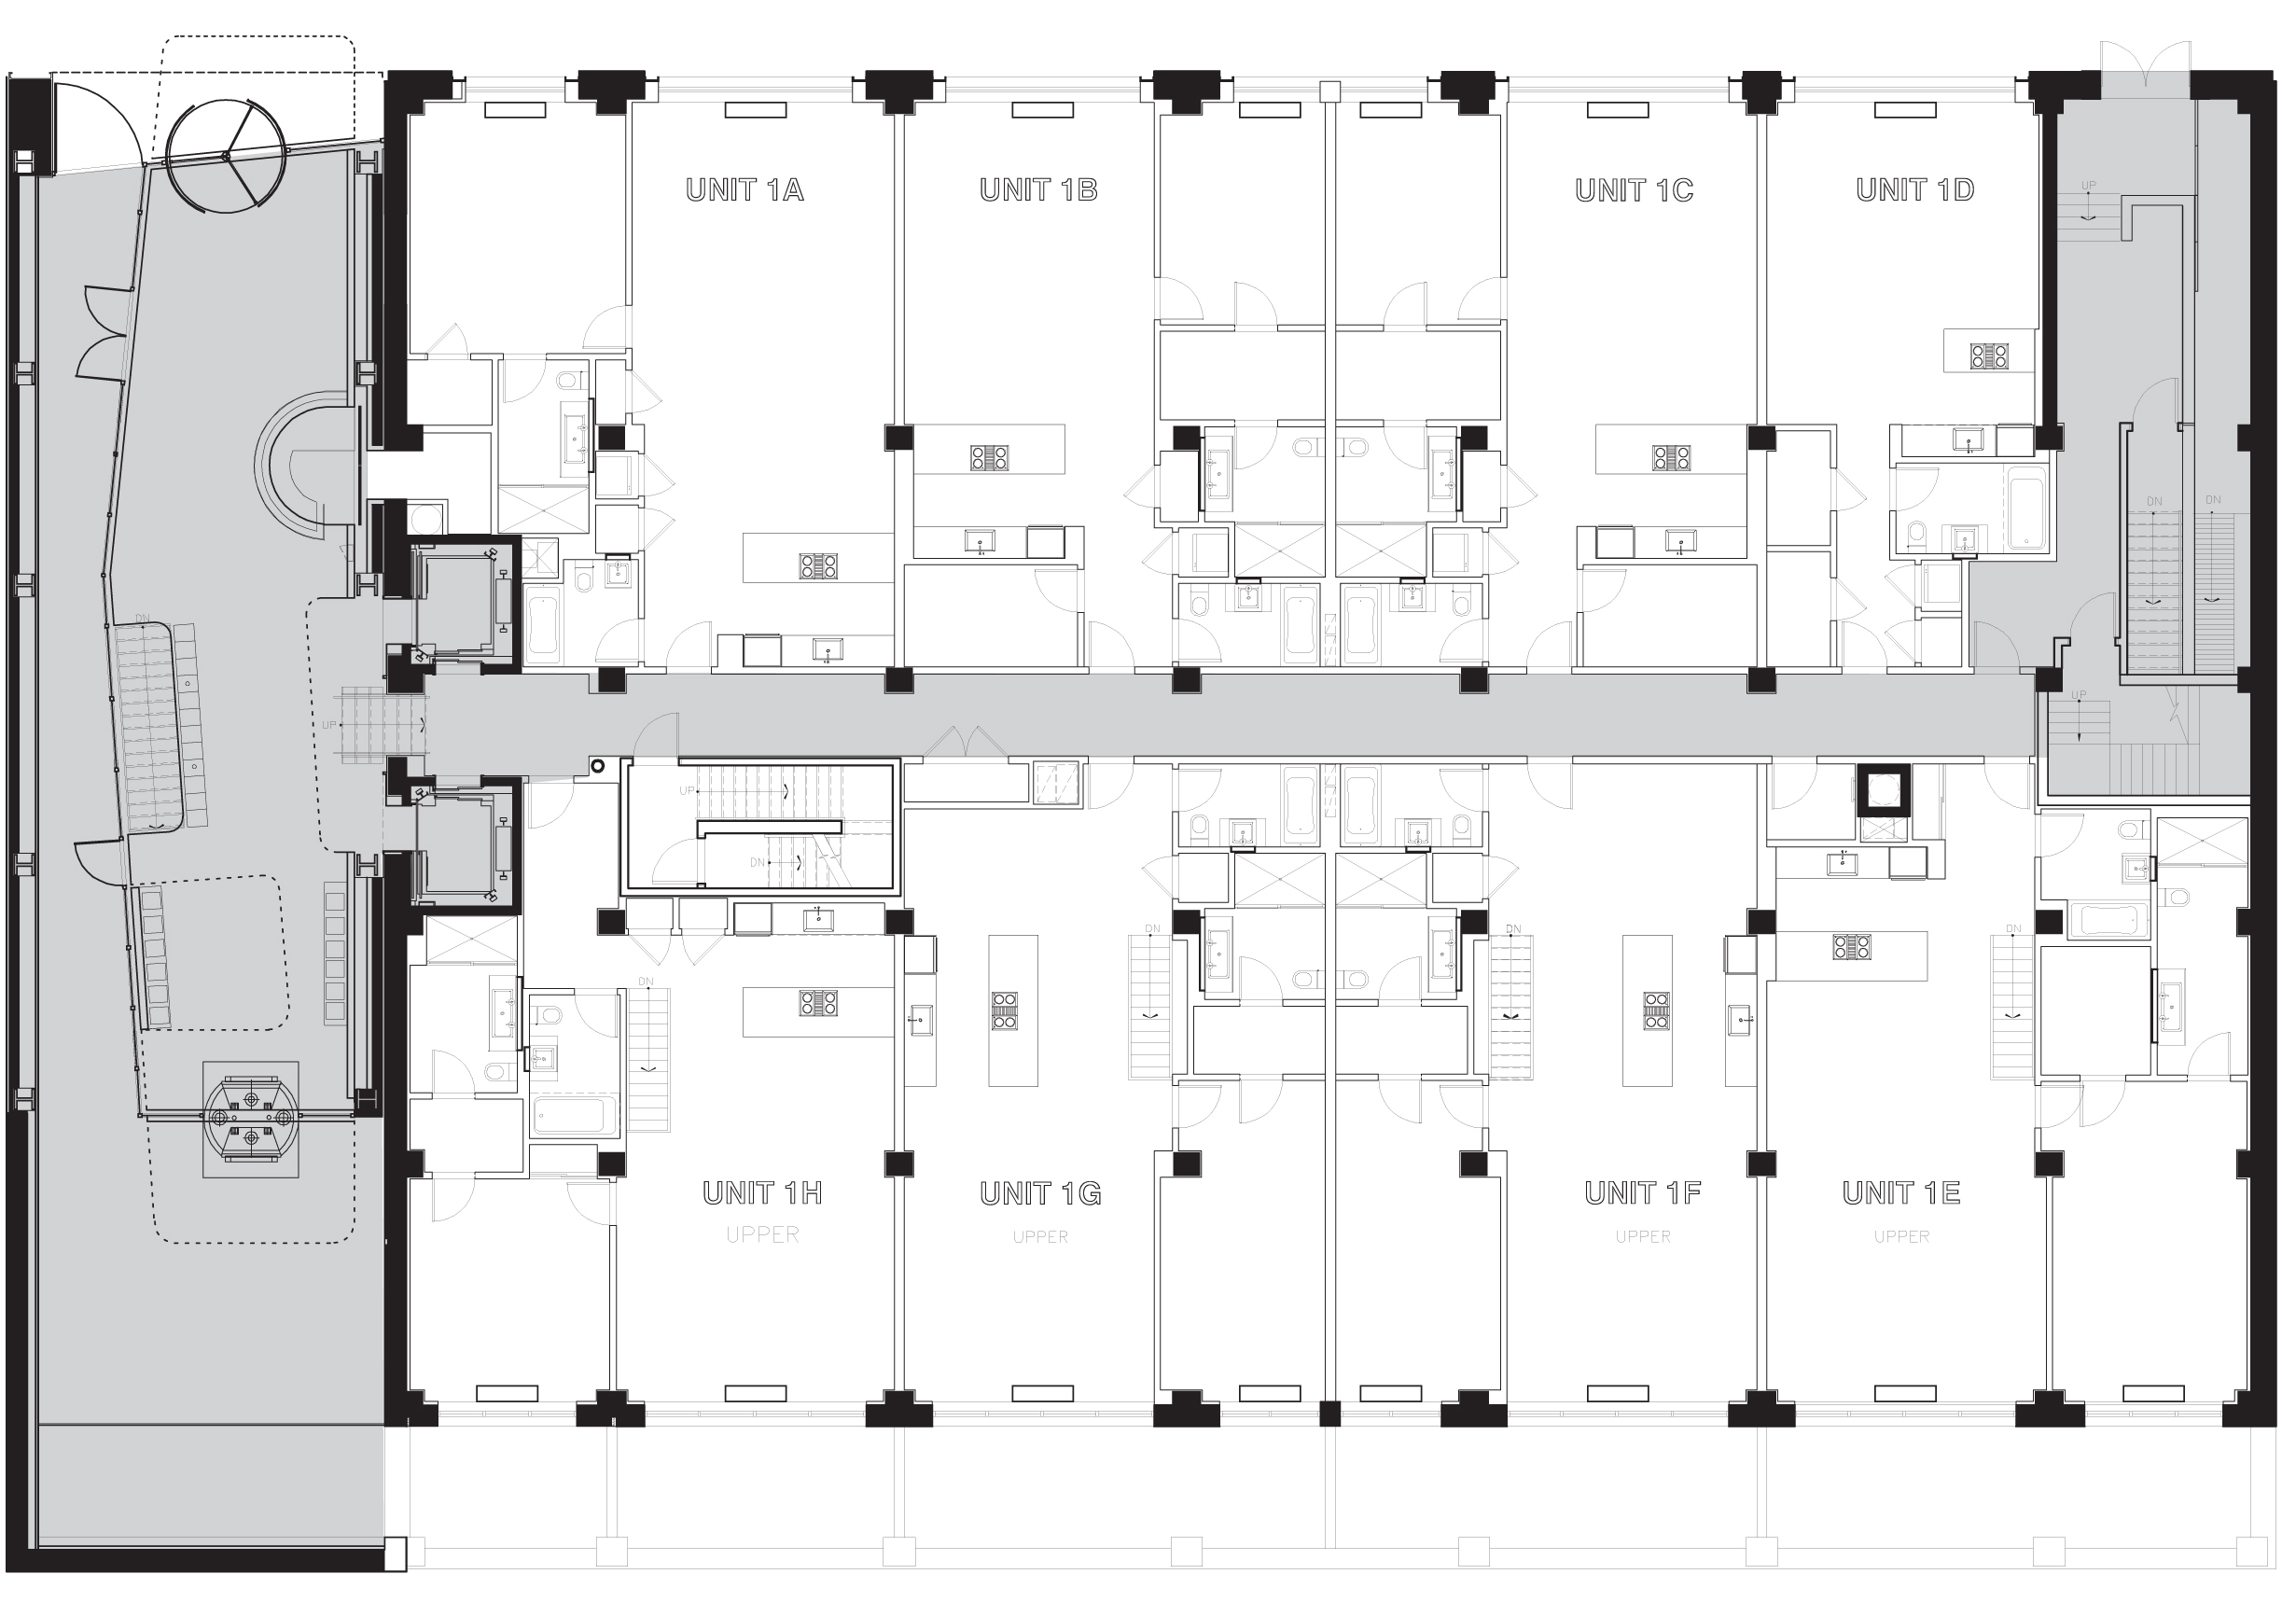 418 West 25th Street, Floor Layout